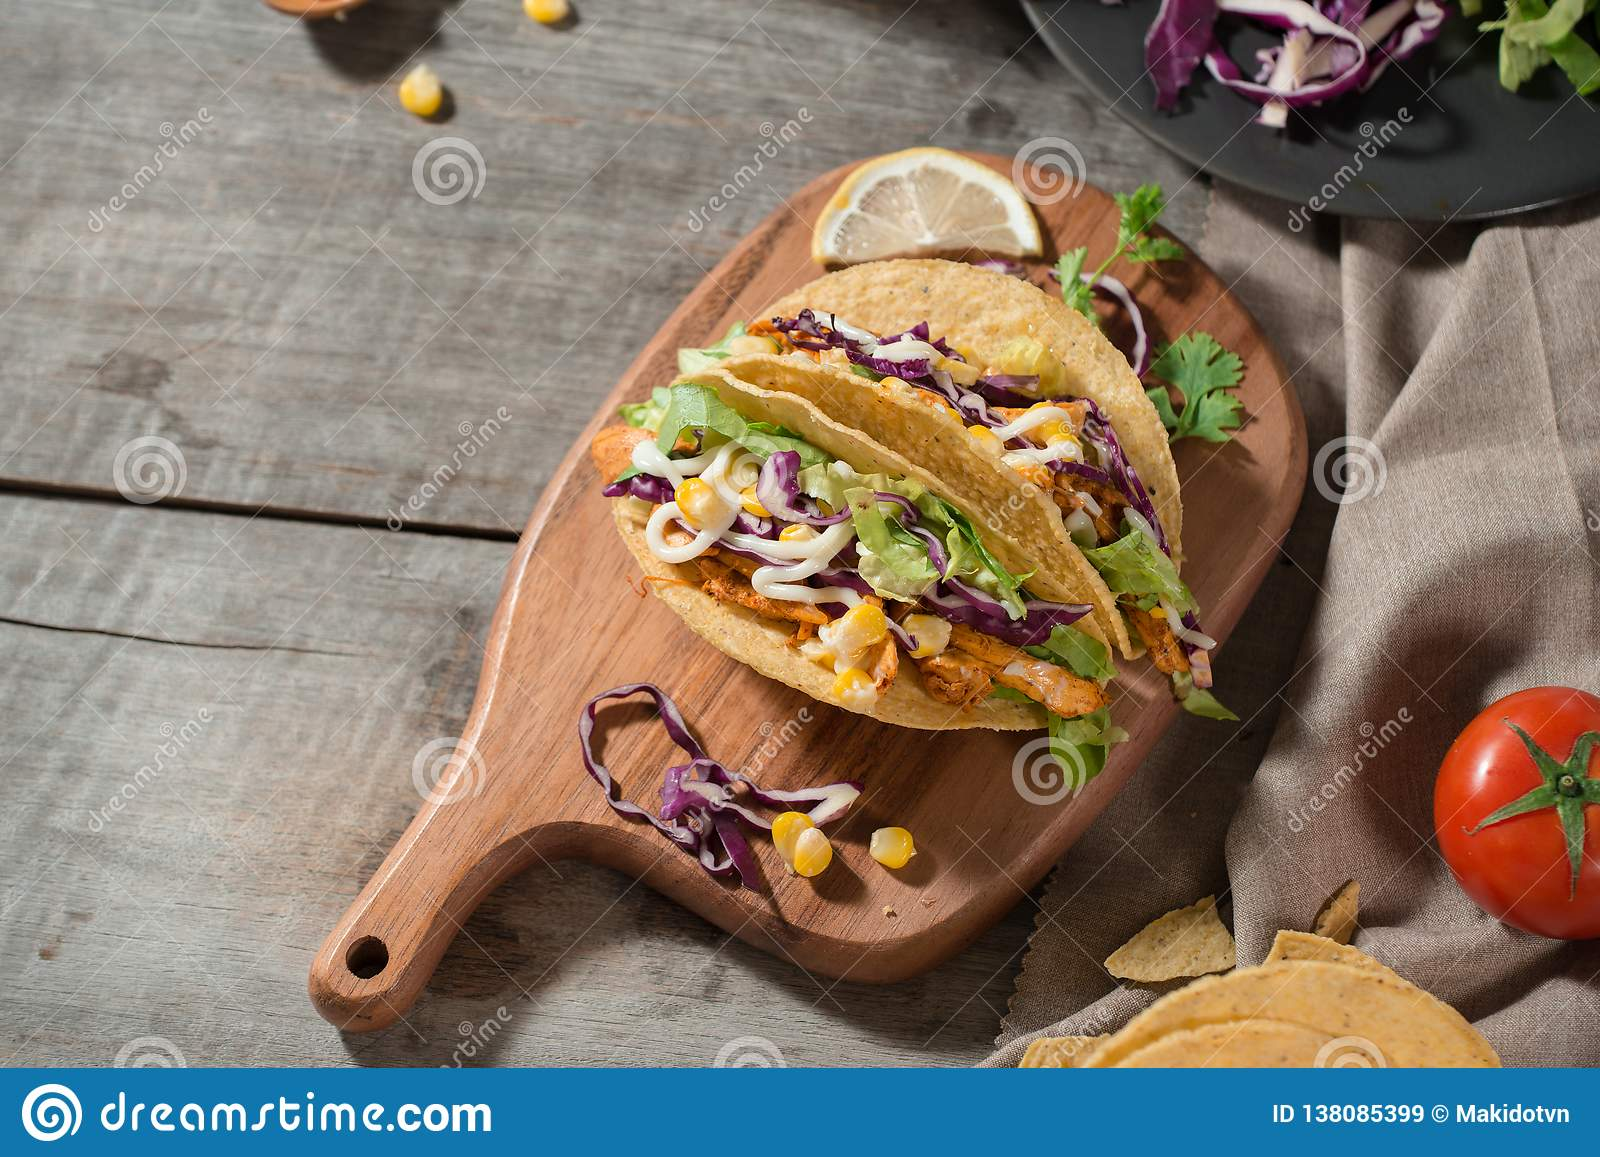 Traditional Mexican Taco With Chicken And Vegetables On